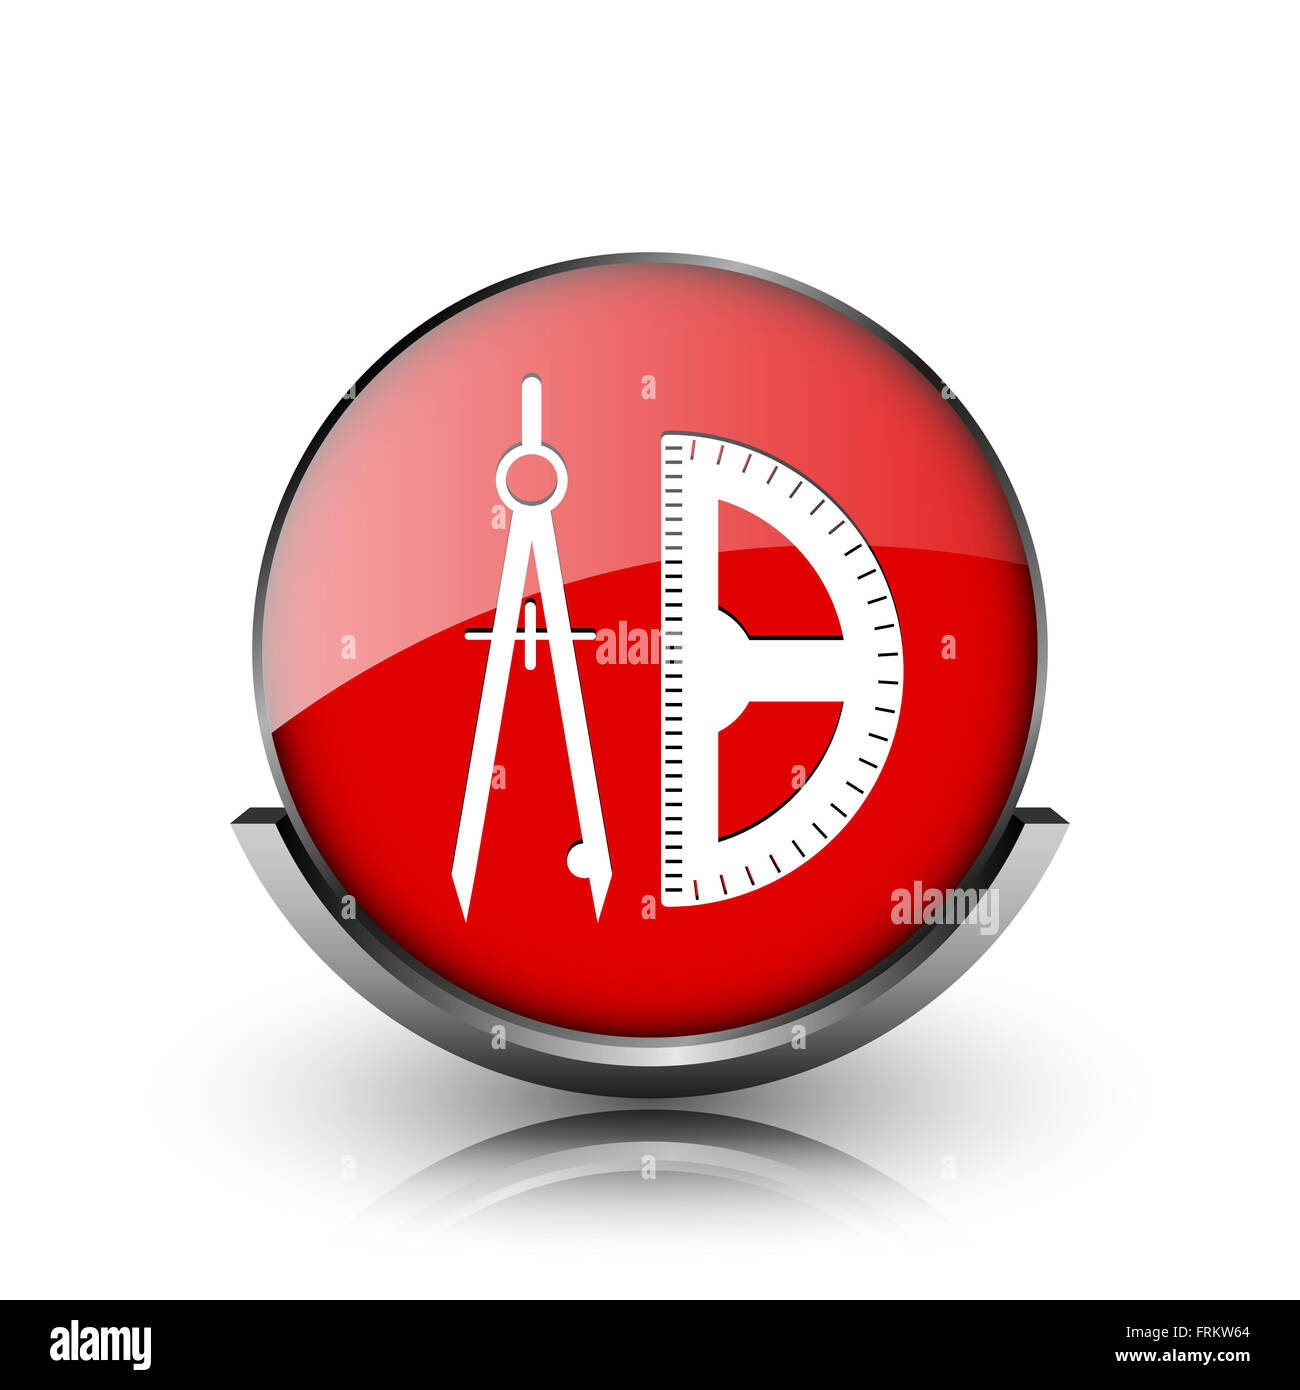 Red shiny glossy icon on white background Stock Photo